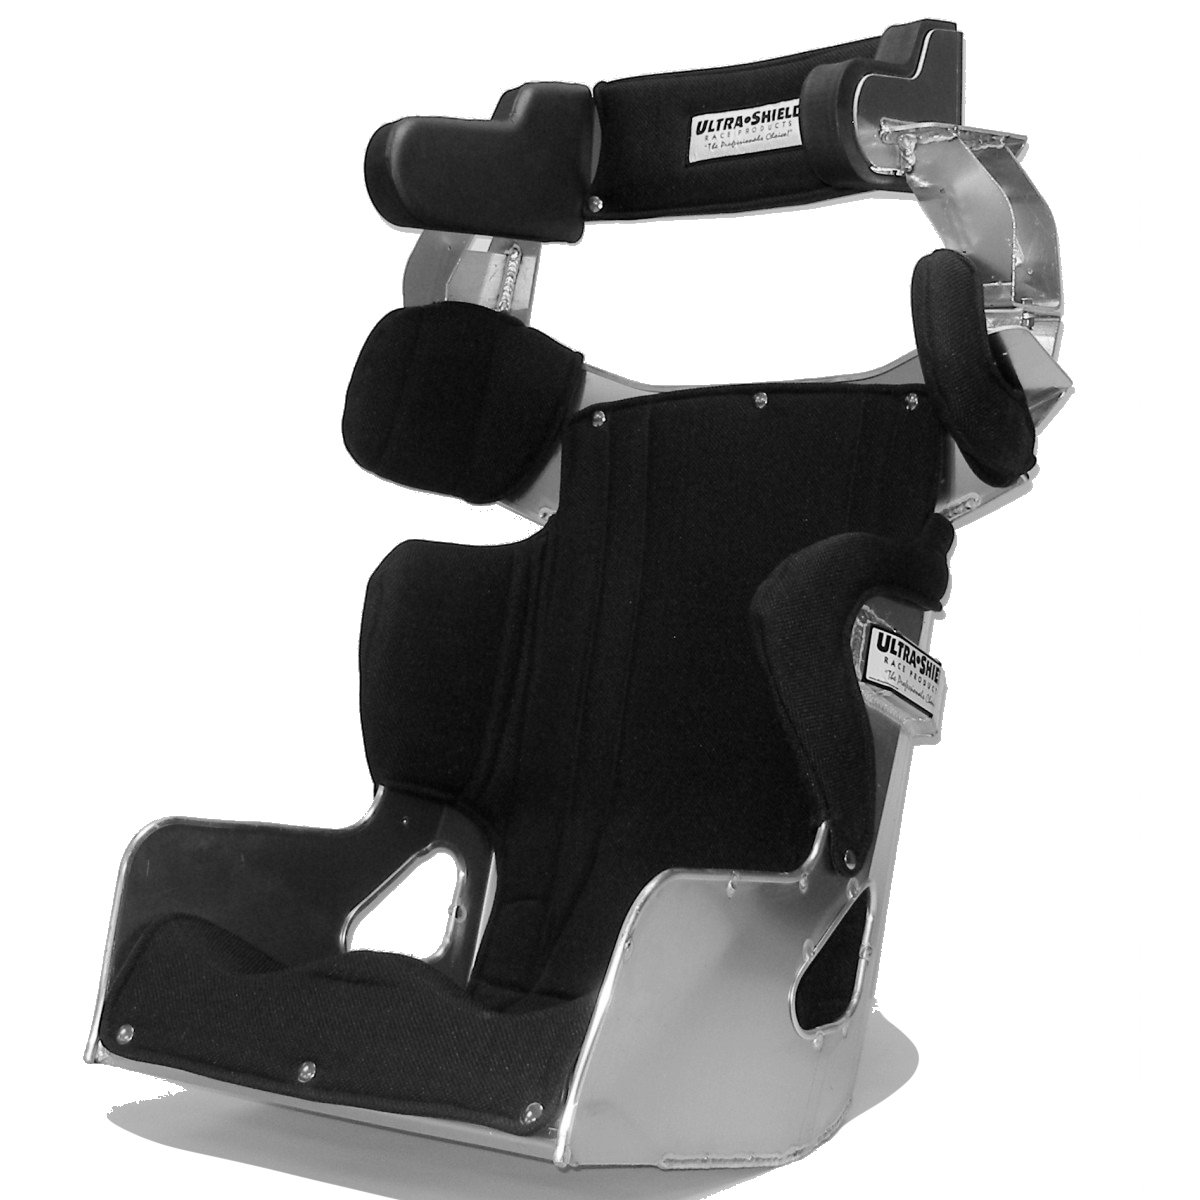 Ultra Shield EF24200 Seat, 2019 Economy Full Containment Halo, 14 in Wide, 20 Degree Layback, Snap Cover Included, Aluminum, Natural, Each